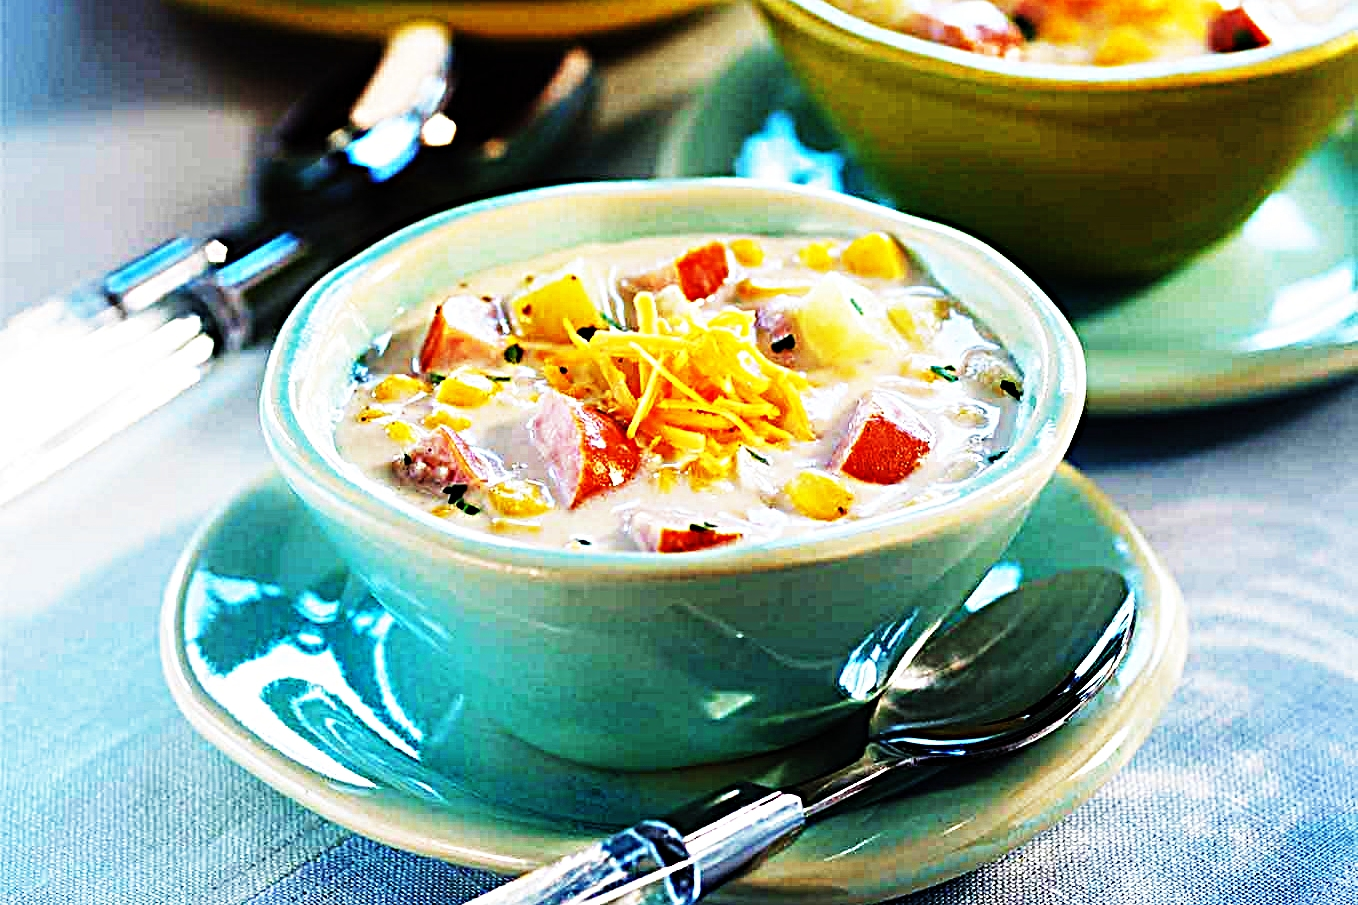 Stupid-Easy Recipe for Corn Chowder With Smoked Sausage (#1 Top-Rated)